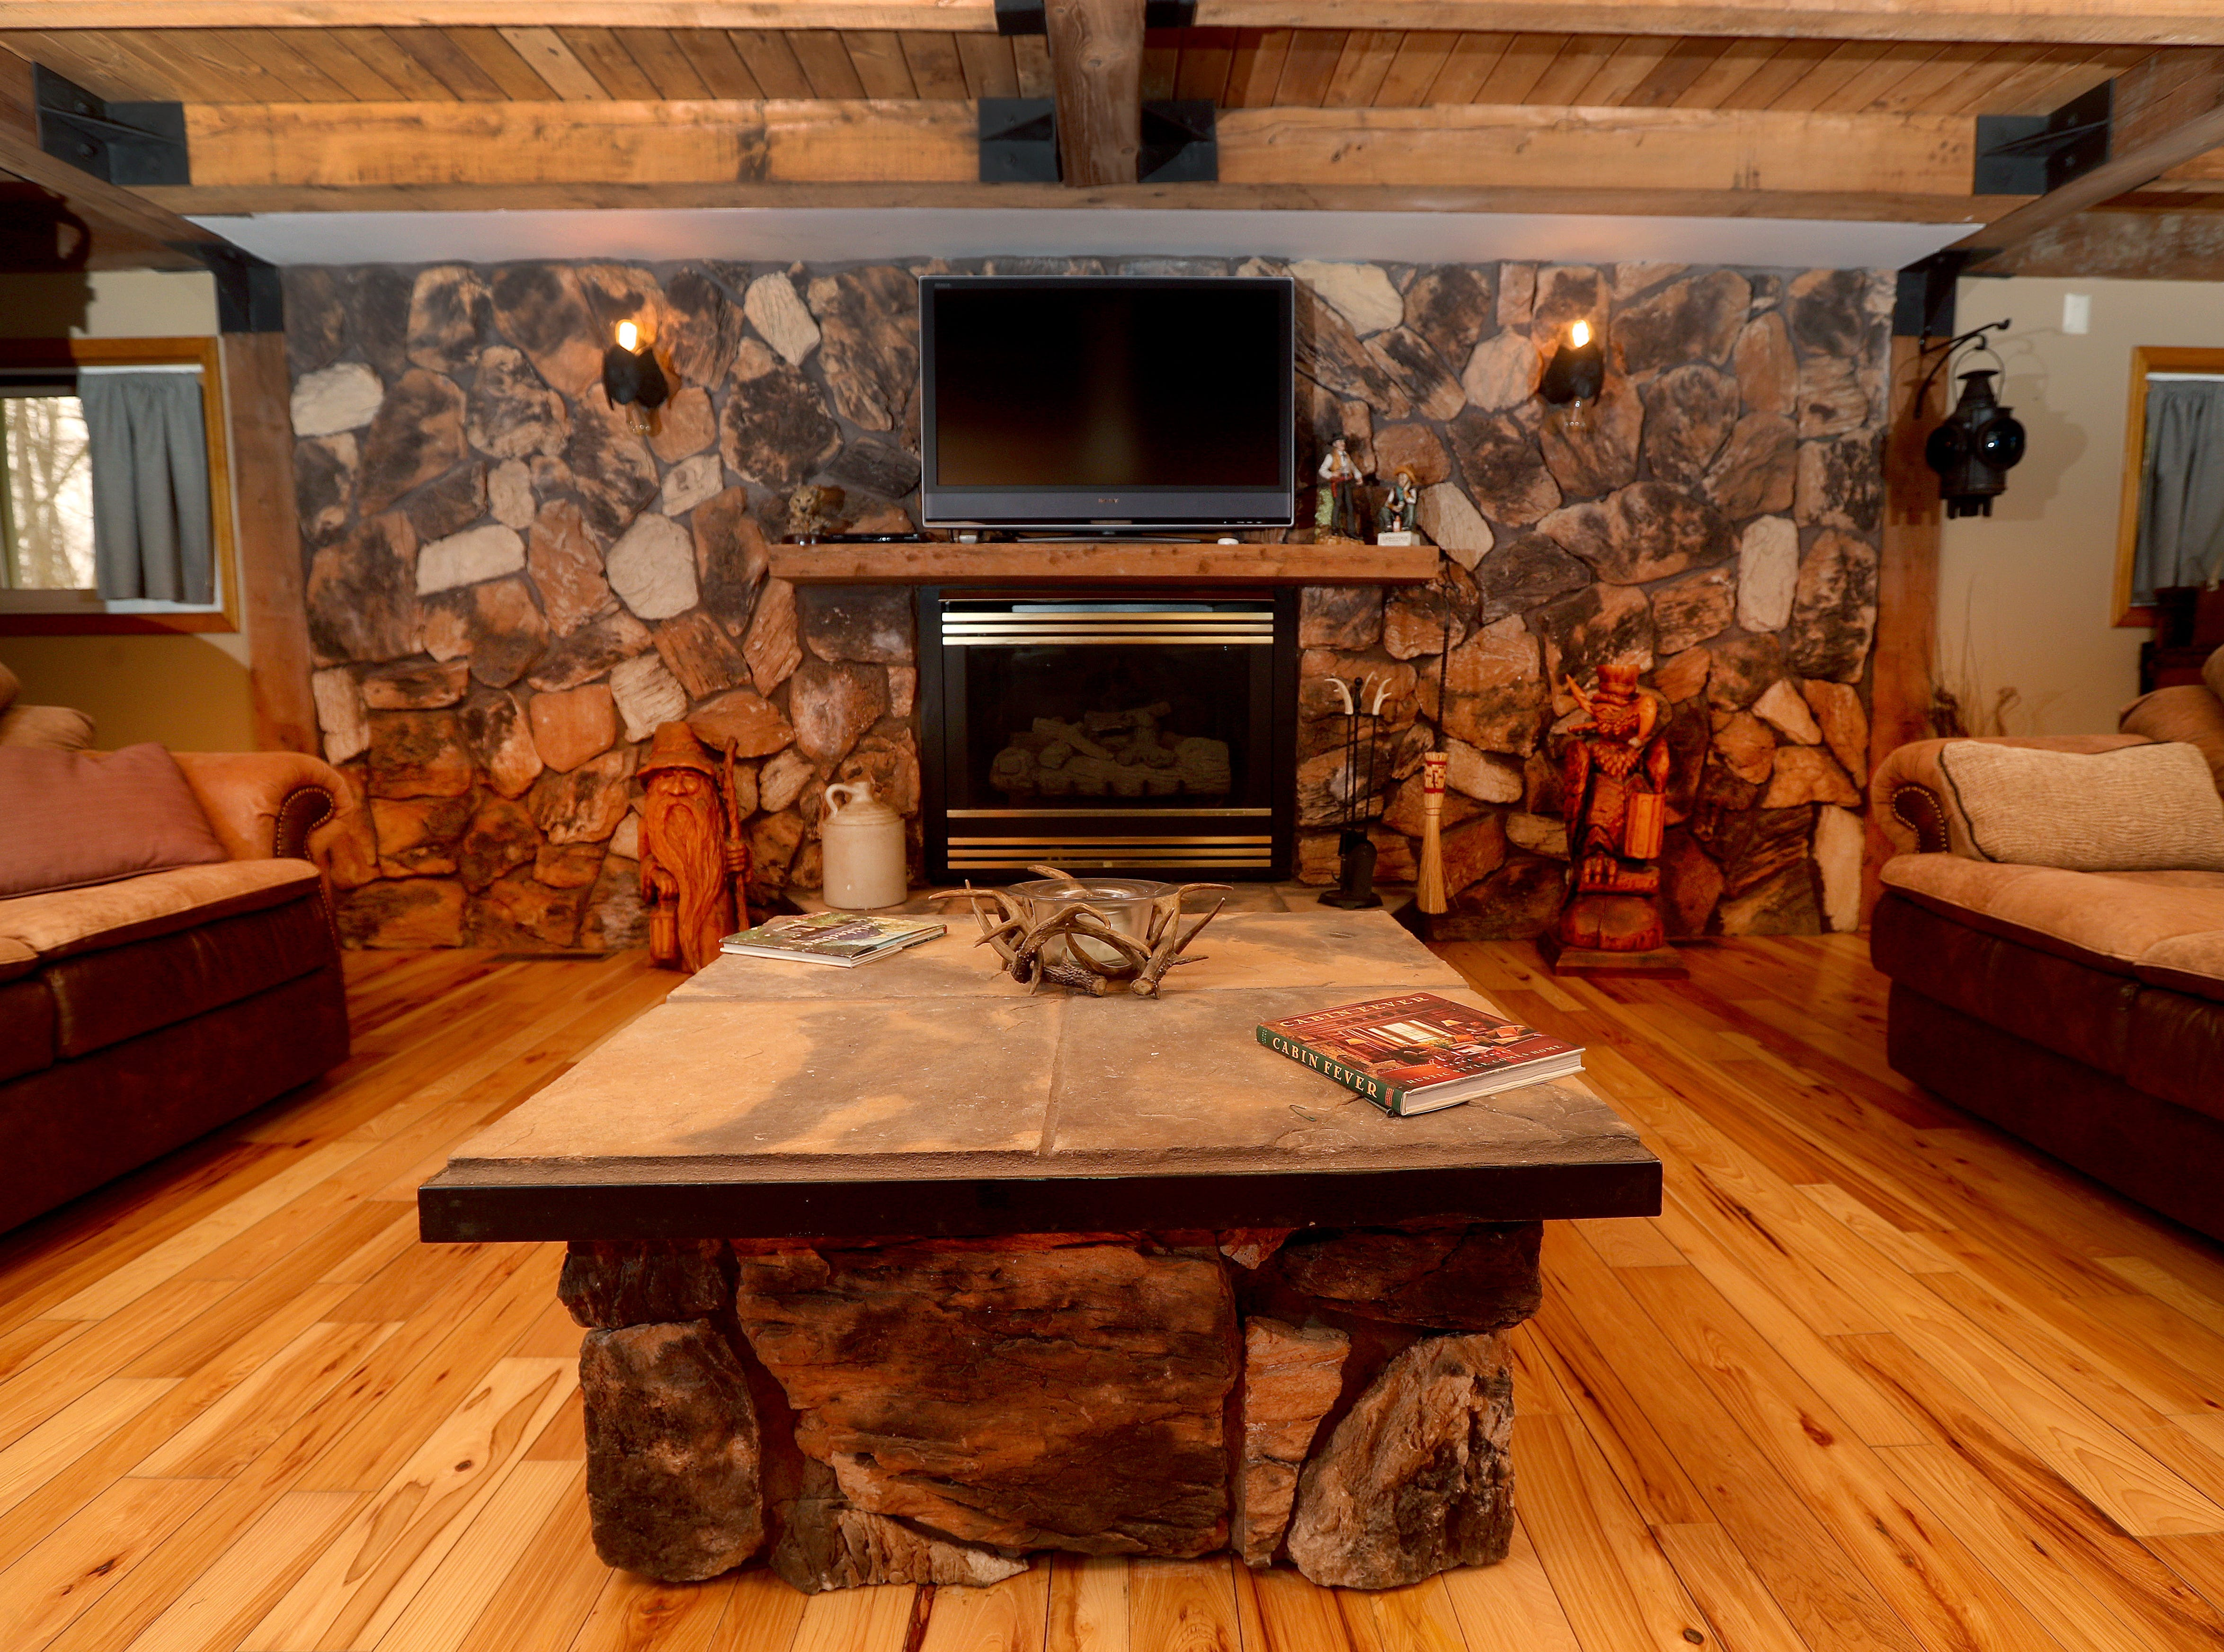 The living room area of the main house includes a fireplace.